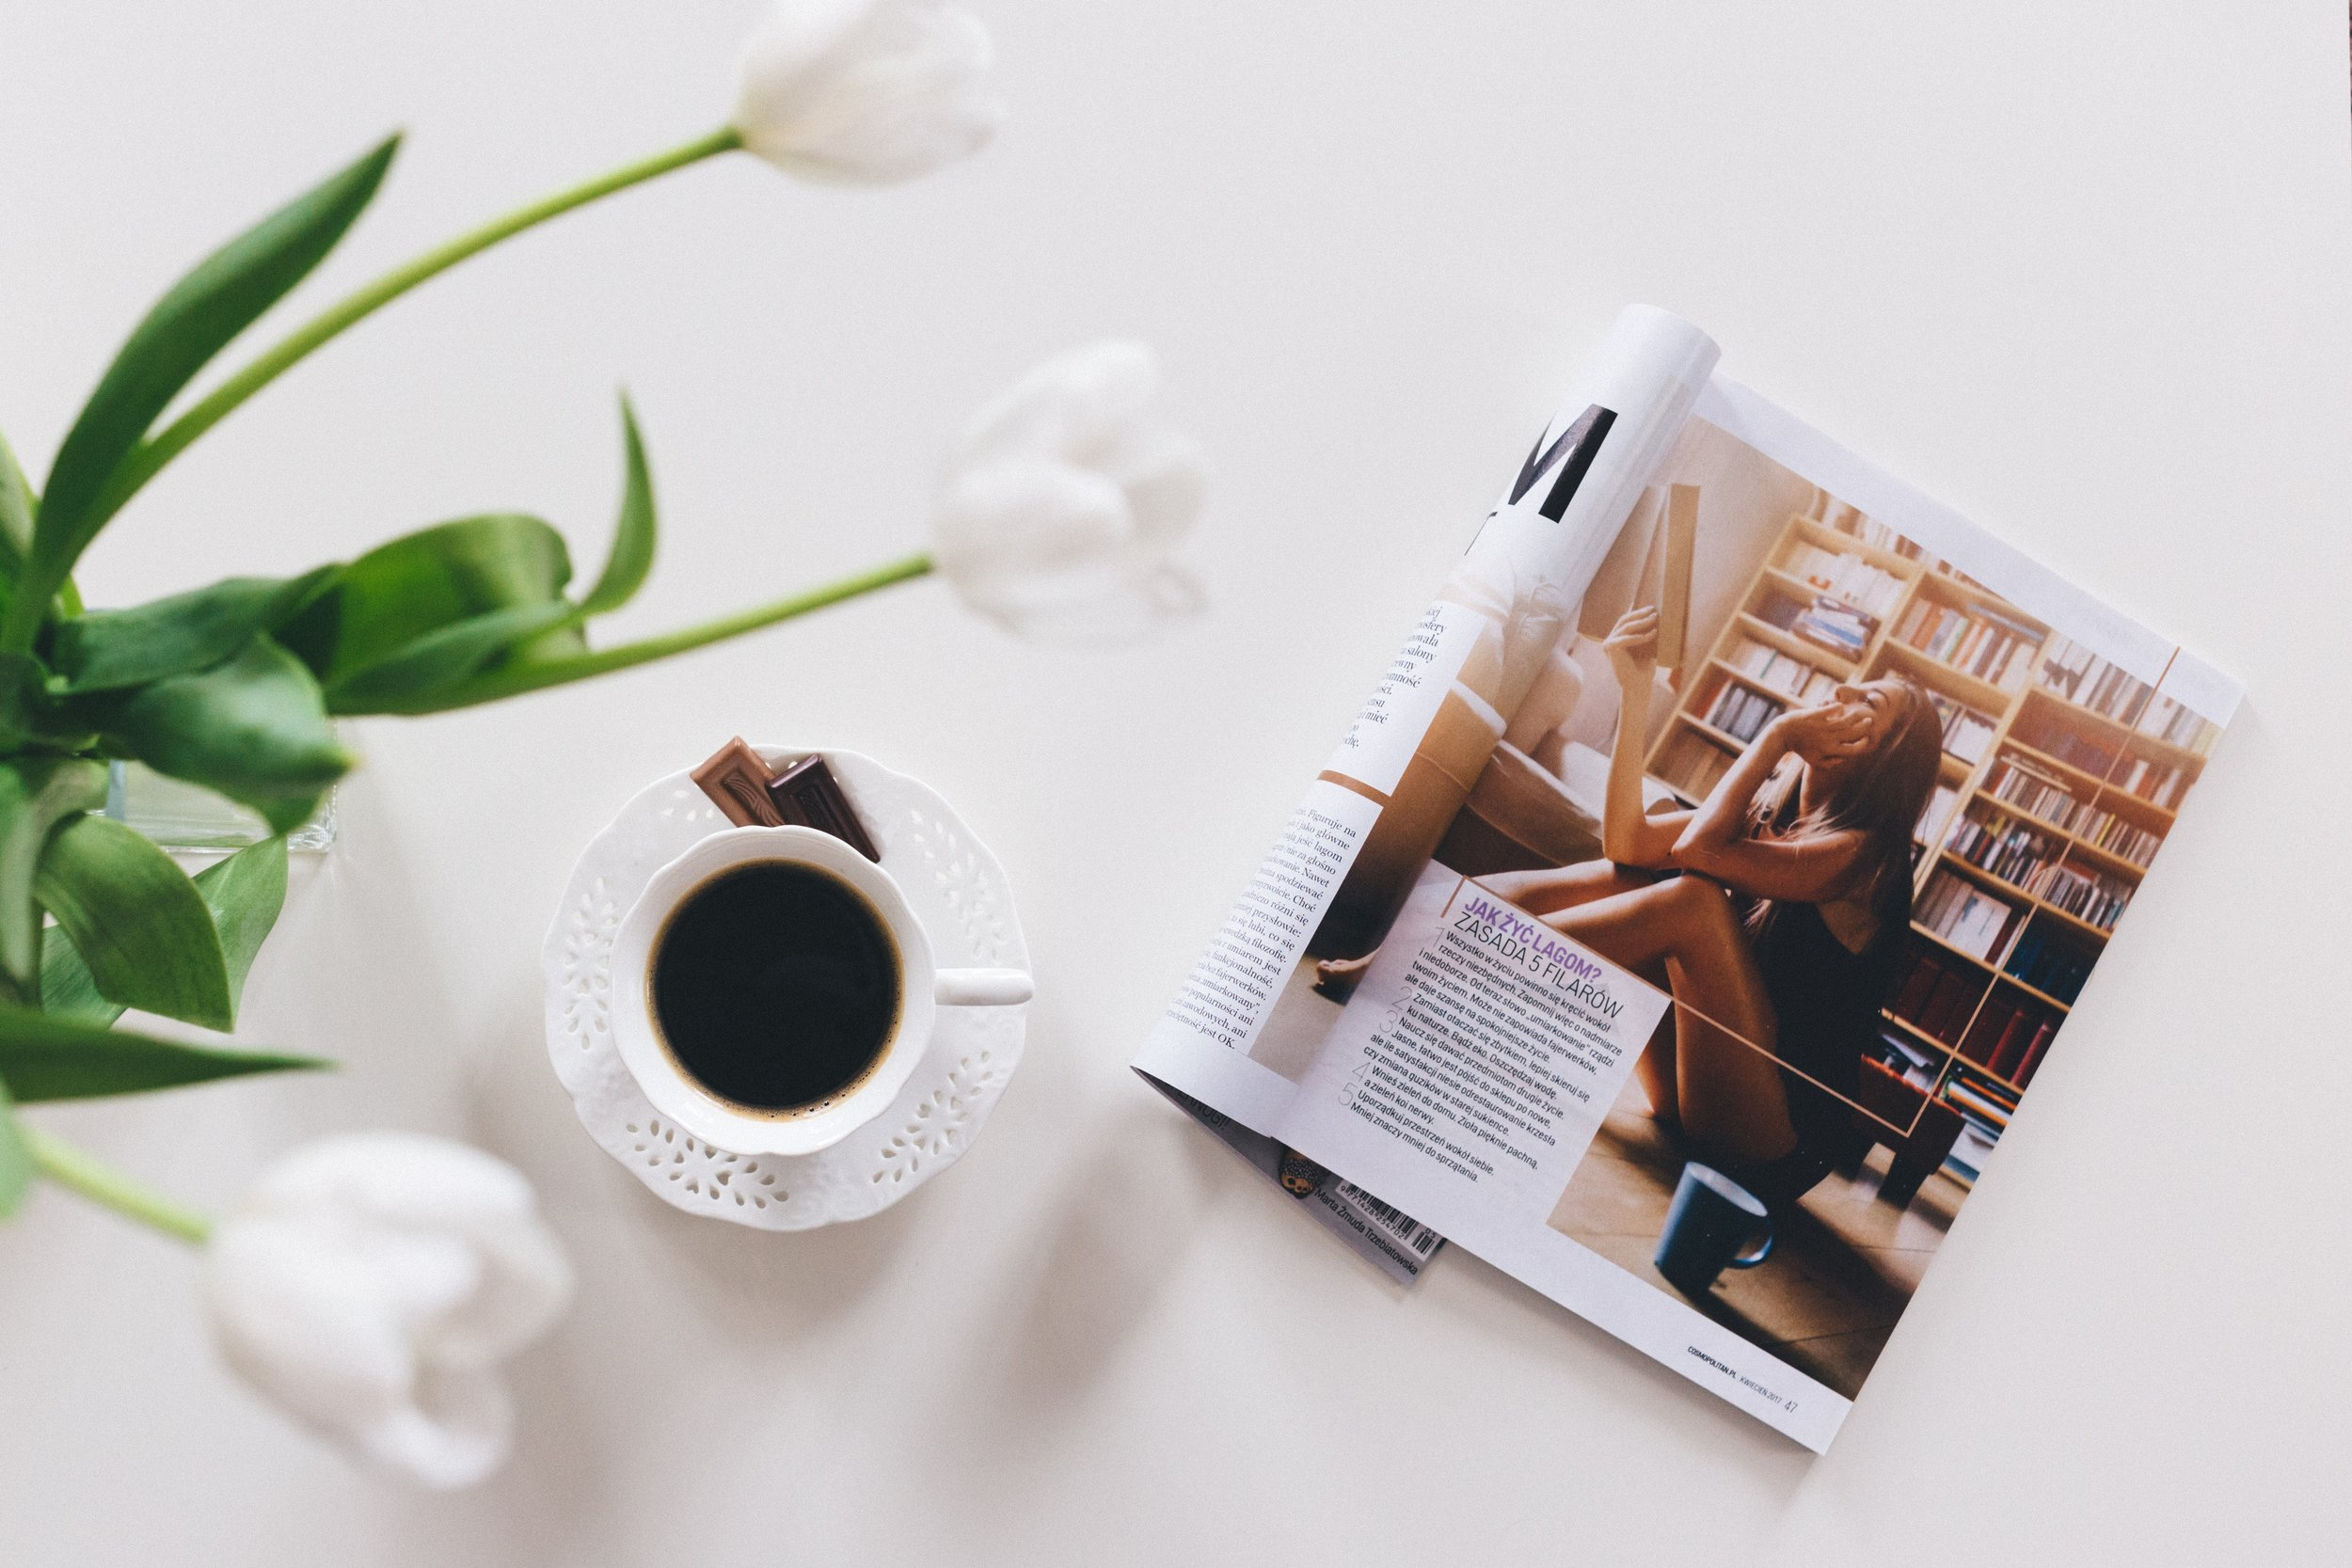 writers submission - Fashion, Lifestyle, Food & Beauty